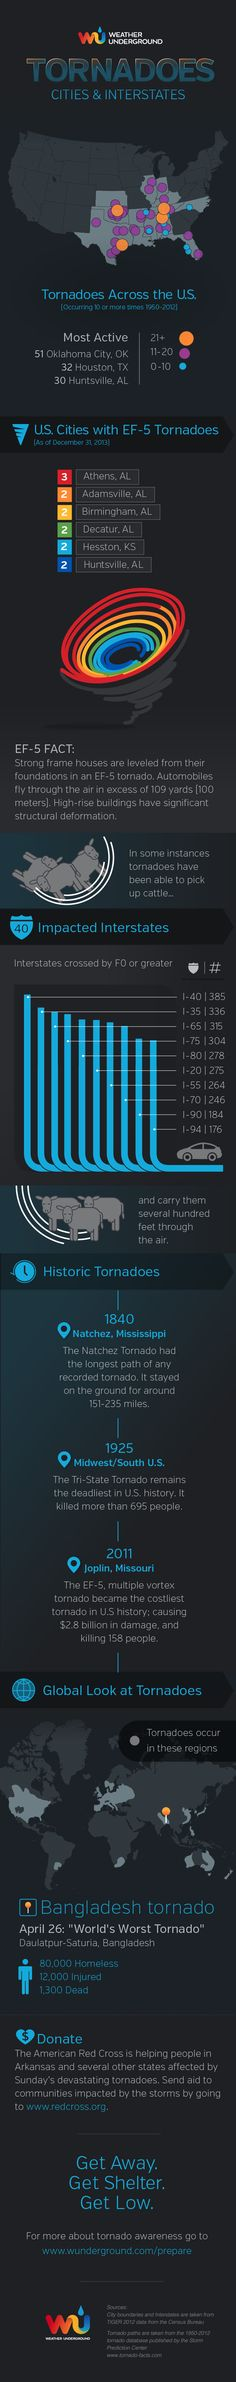 Where do the most tornadoes occur in the U. What kind of damage can an tornado do? How far can a tornado carry a cow? For information on tornado strength and damage, check out the tornado infographic by Weather Underground.